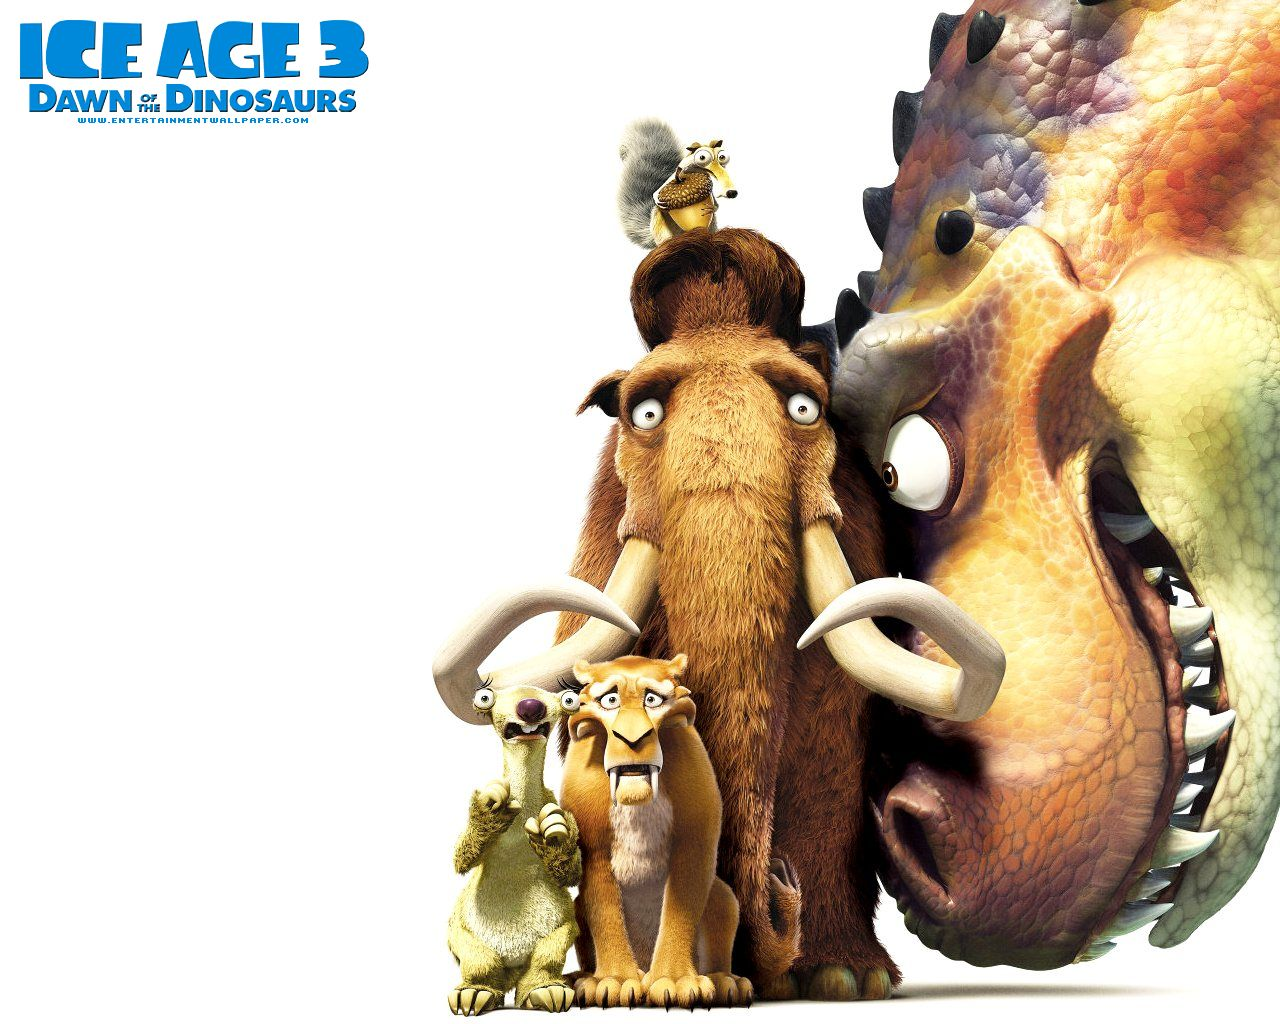 ... dinosaurs Ice Age 3!